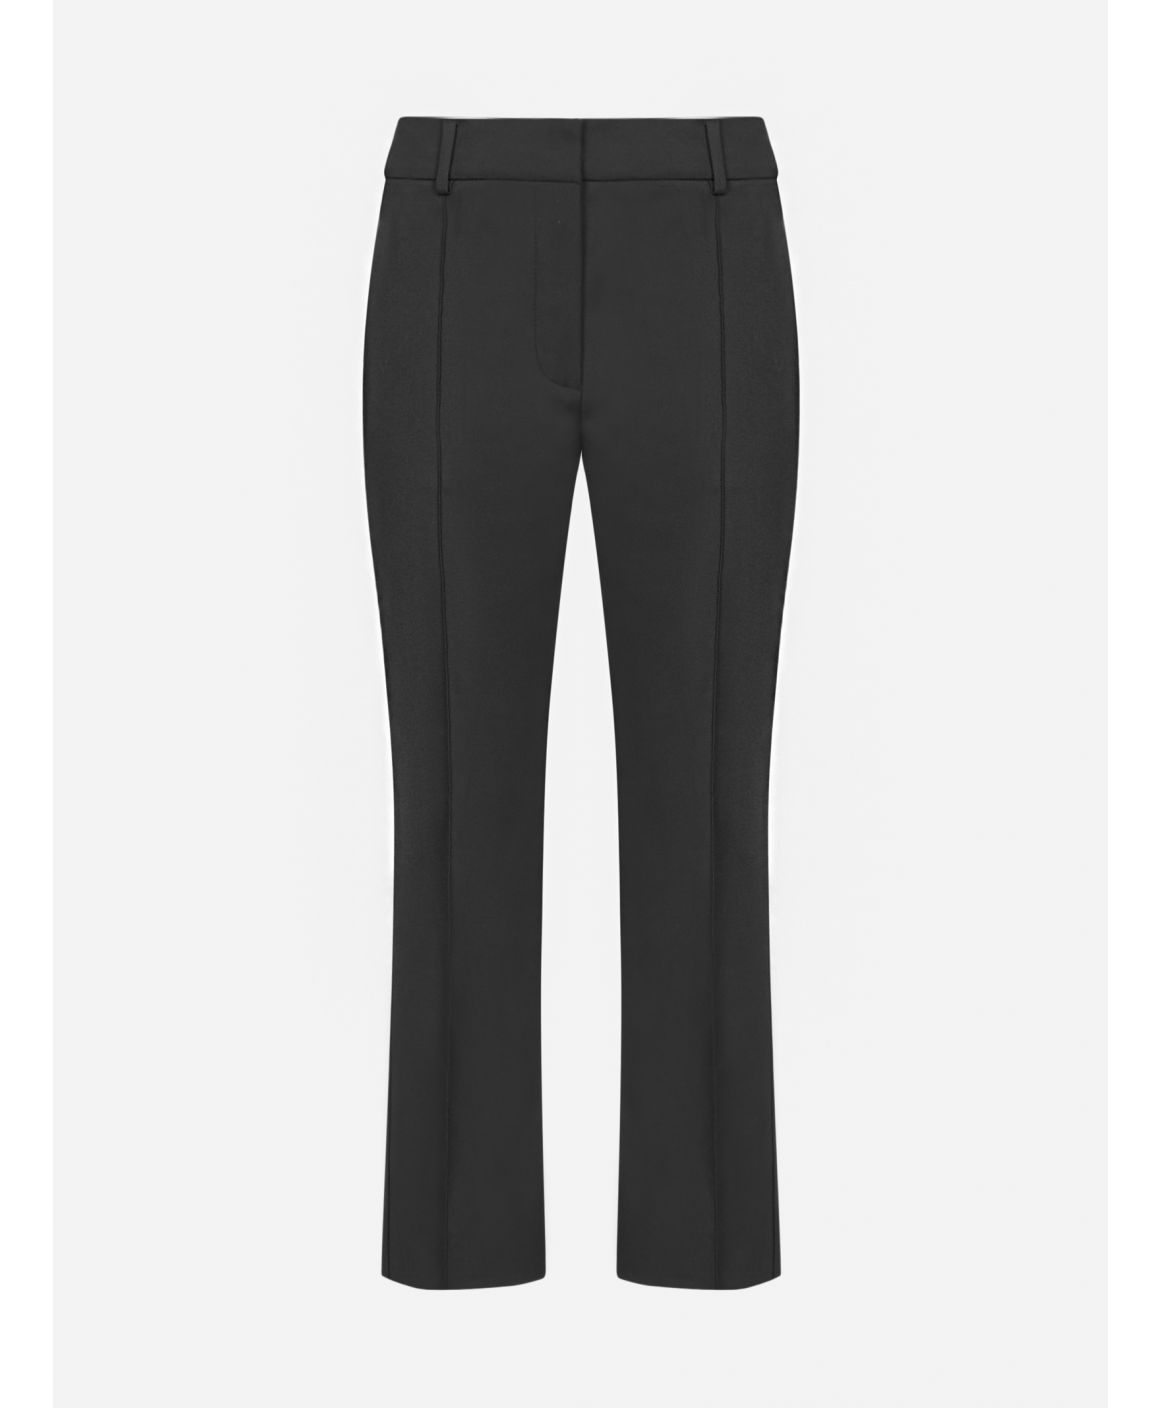 Laghi stretch cotton trousers